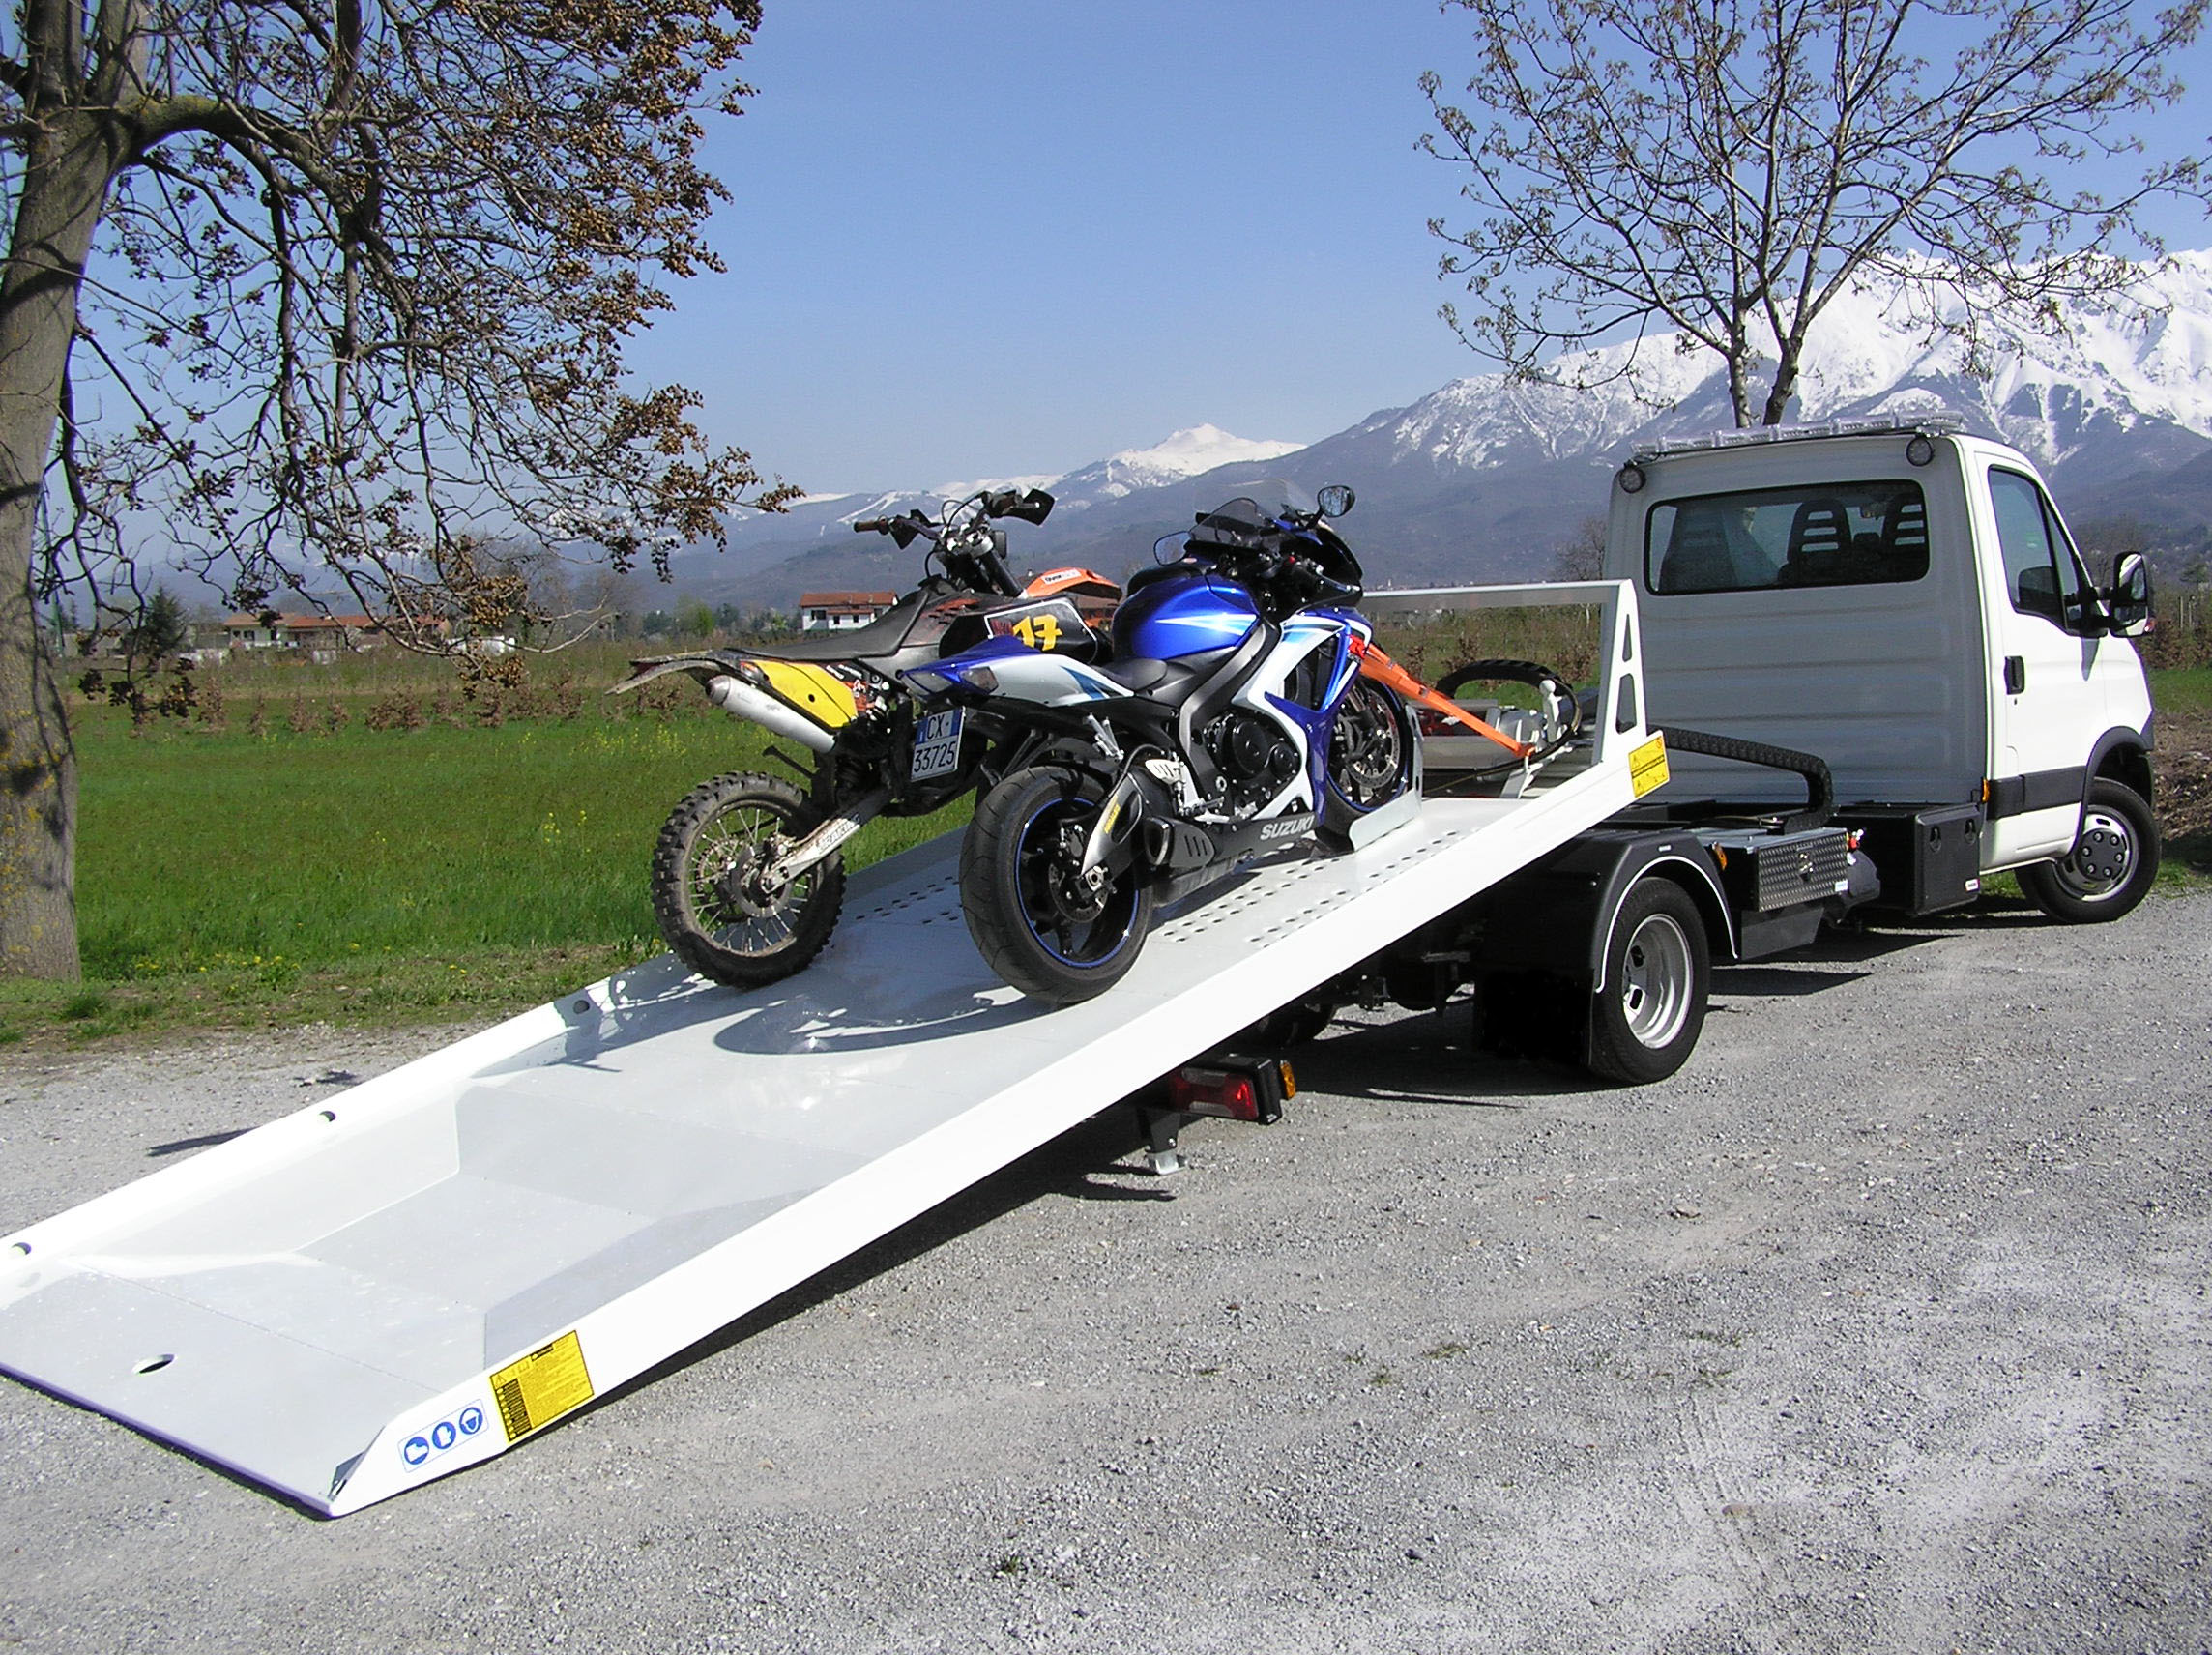 inexpensive tow service